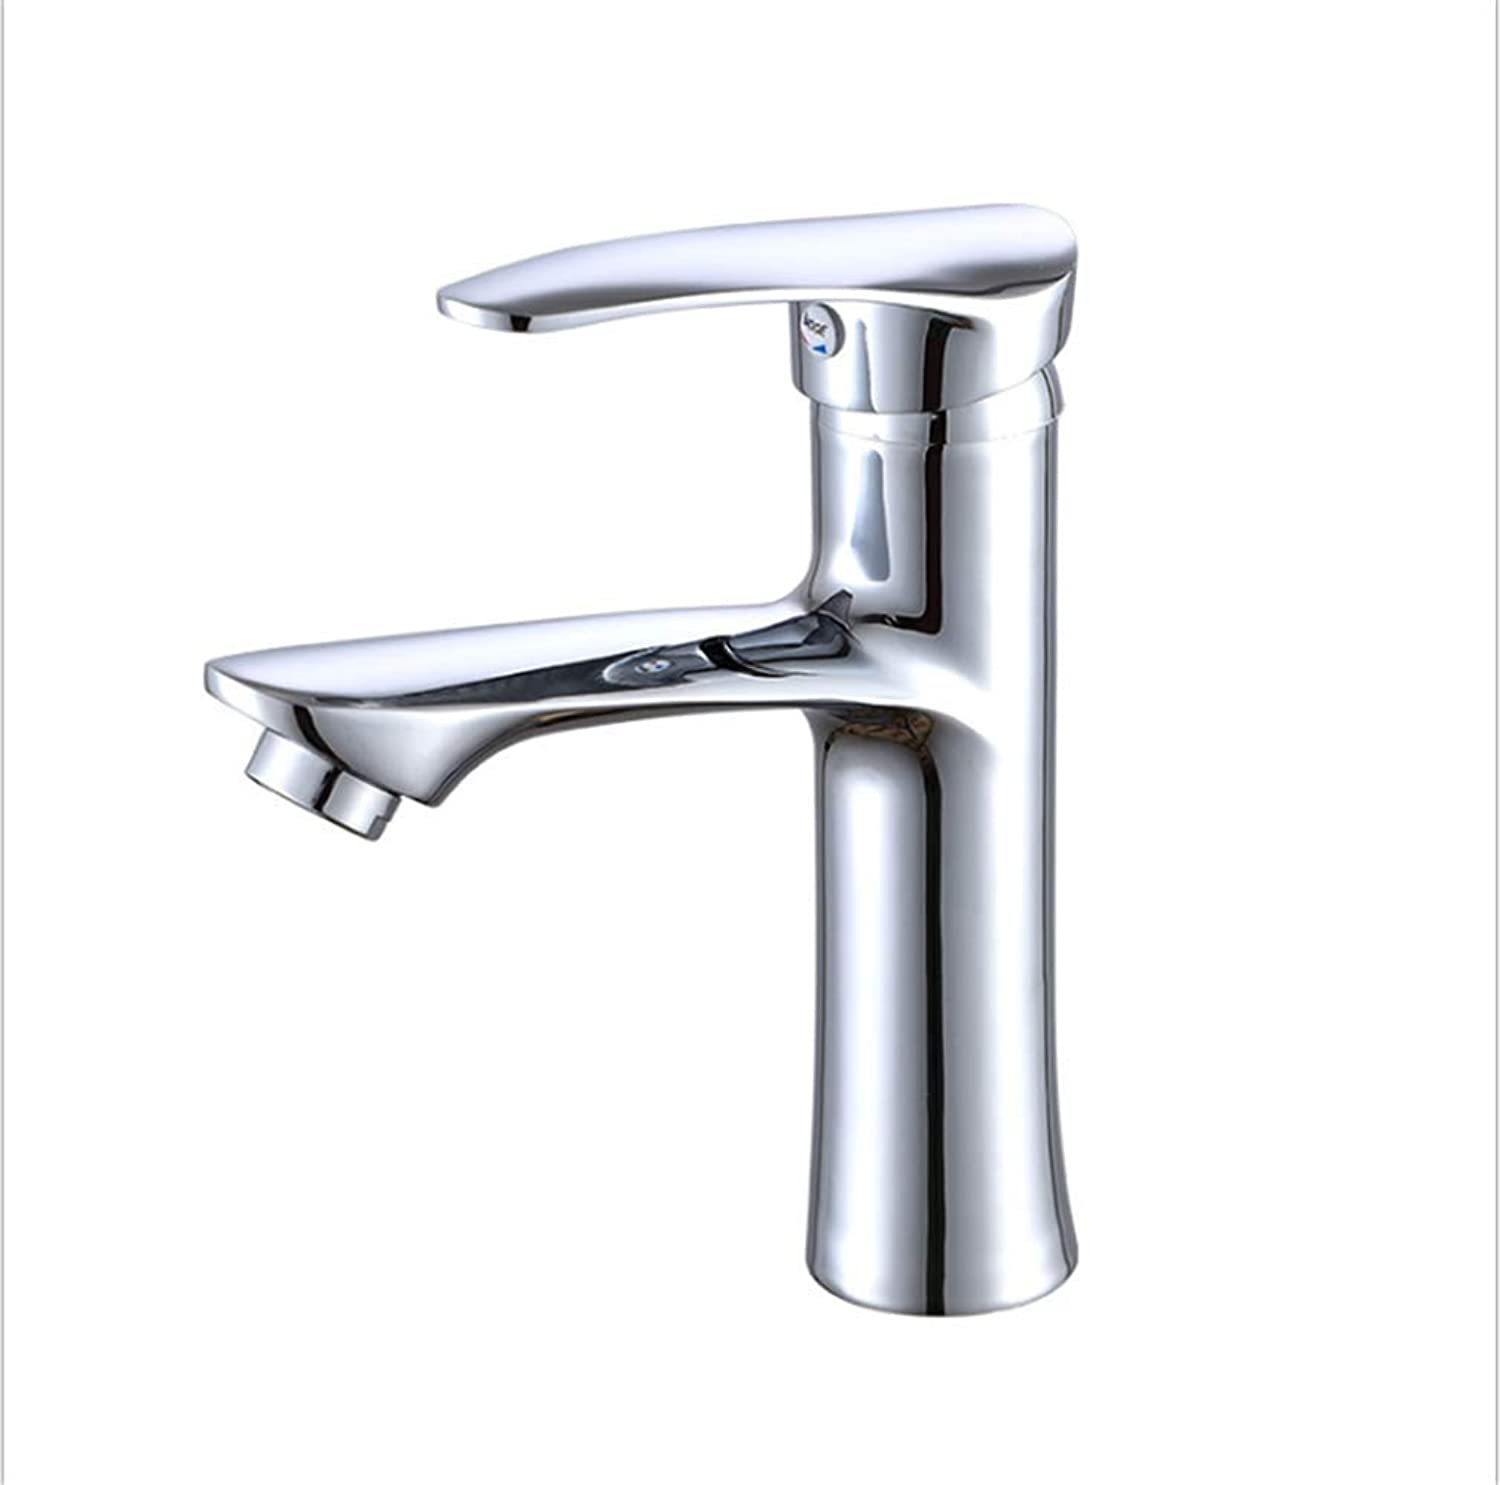 Counter Drinking Designer Archface Basin Single-Hole Single-Handed Cold-Hot Mixing Faucet Single-Hole Face Basin Faucet